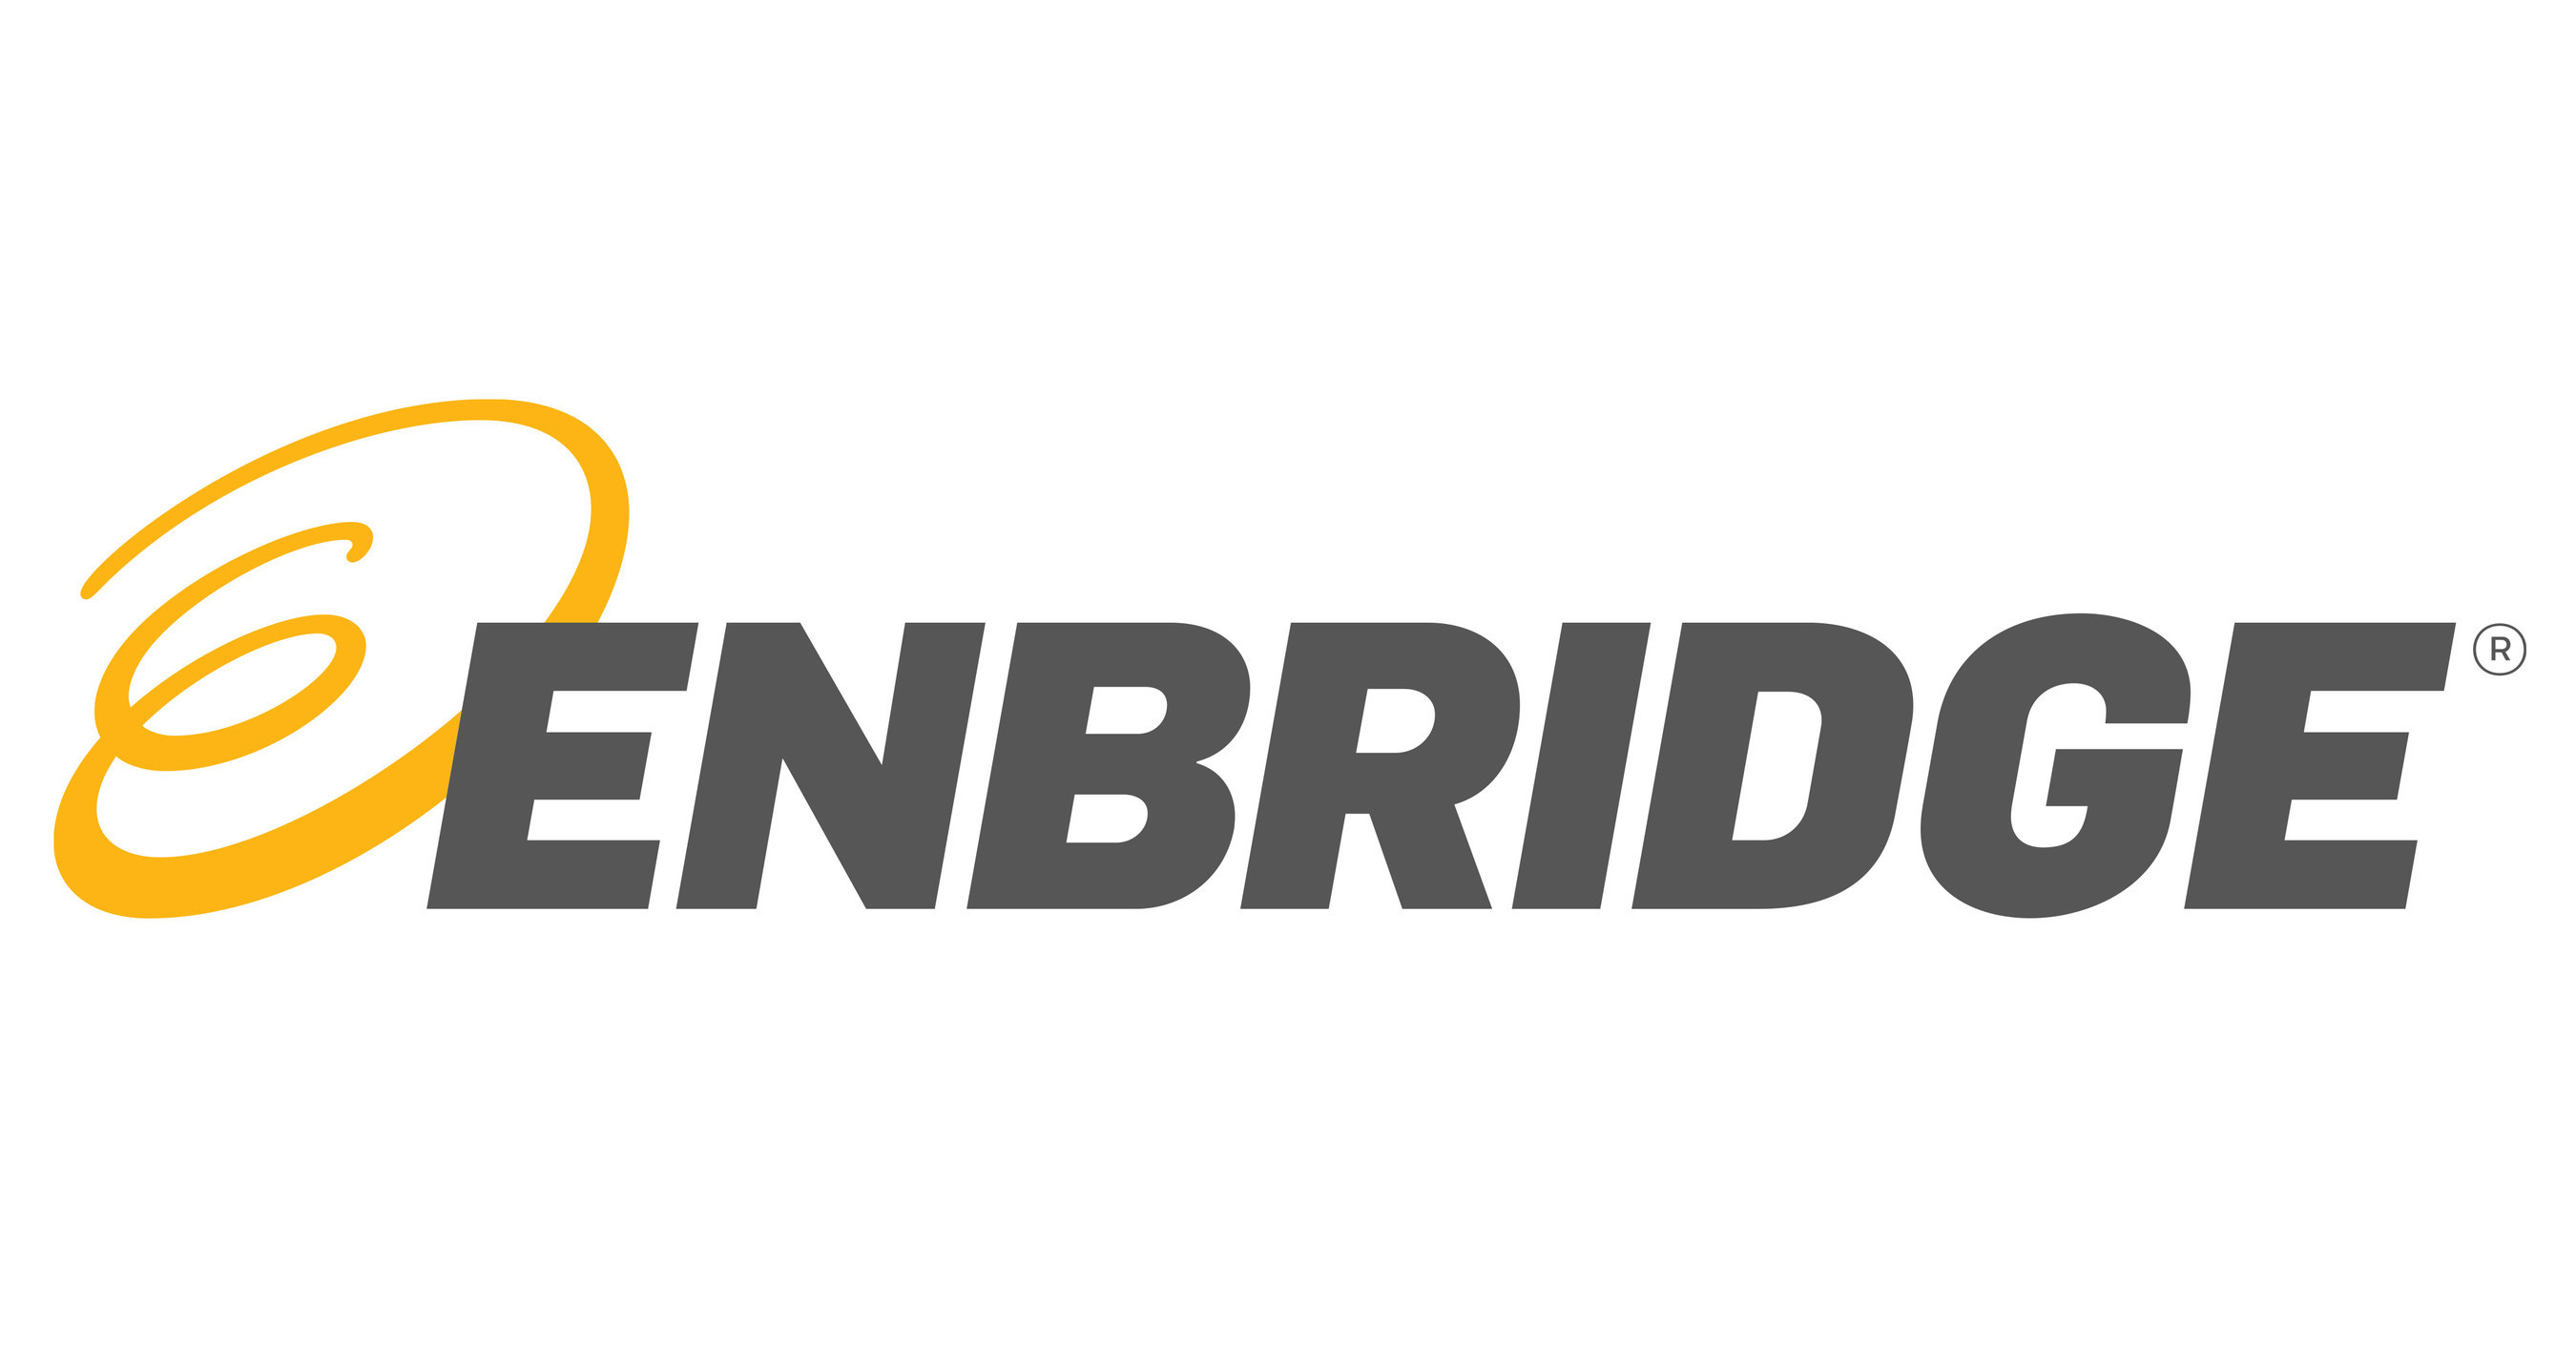 Enbridge Natural gas distribution company